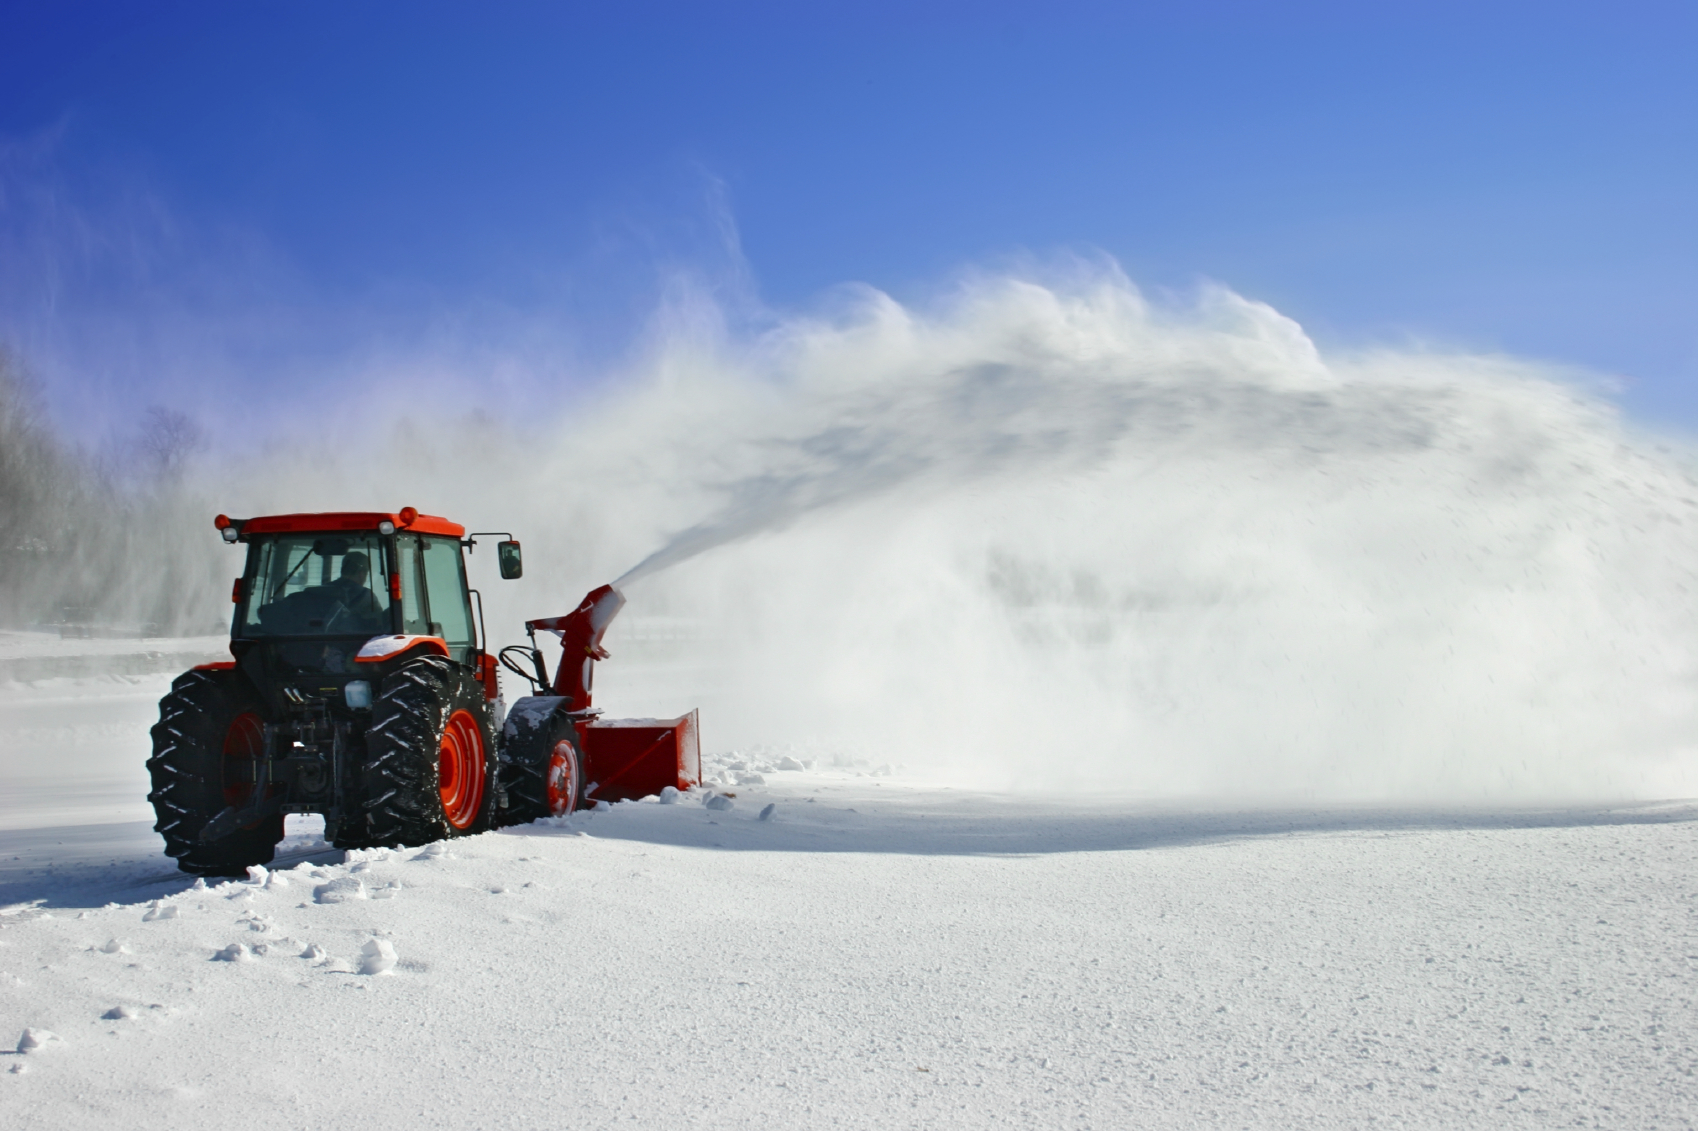 Snow is being removed by a snow blower.